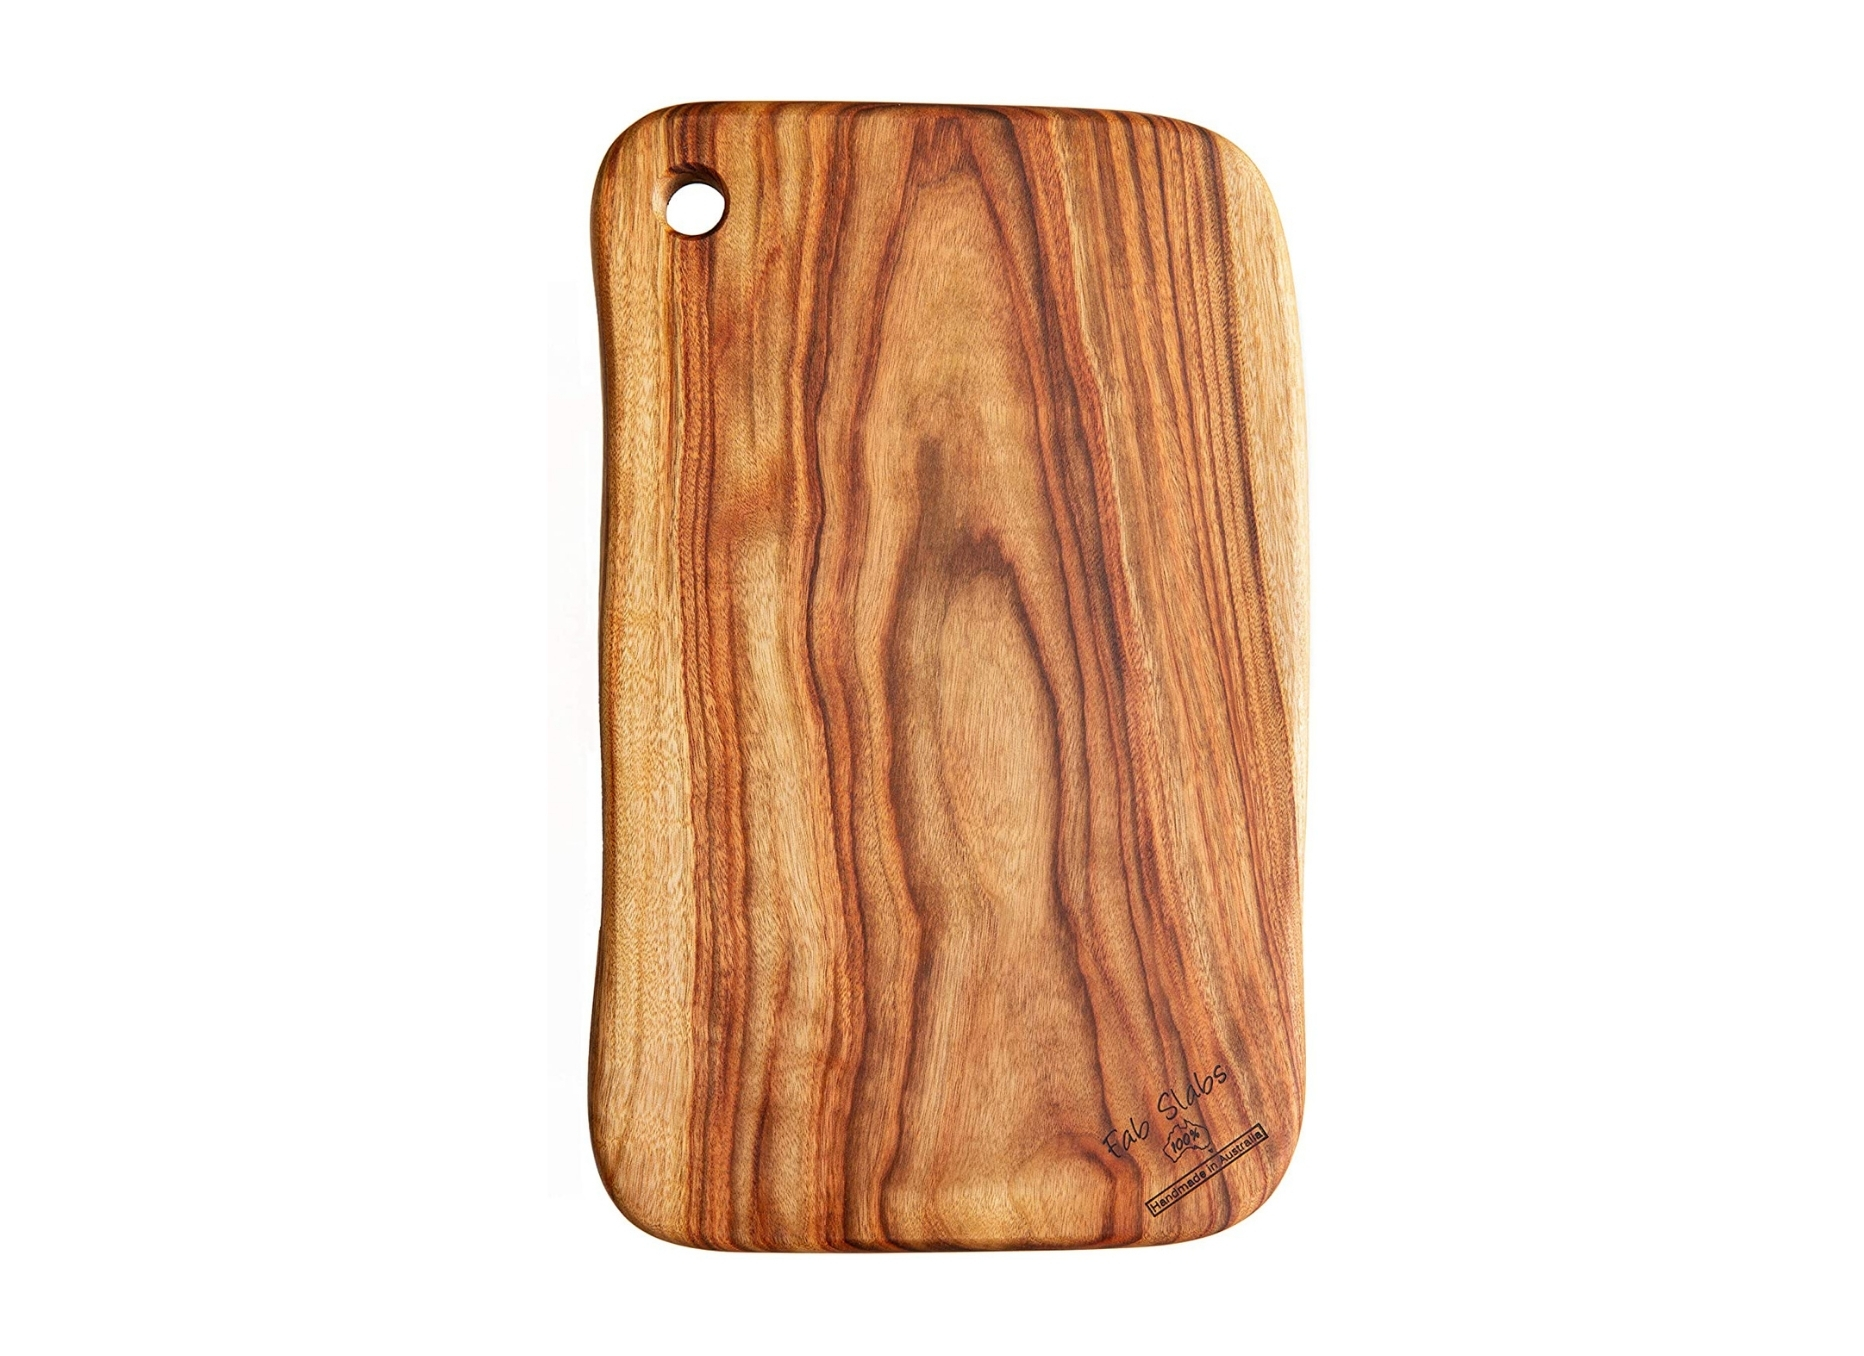 Fab Slab Cutting Board